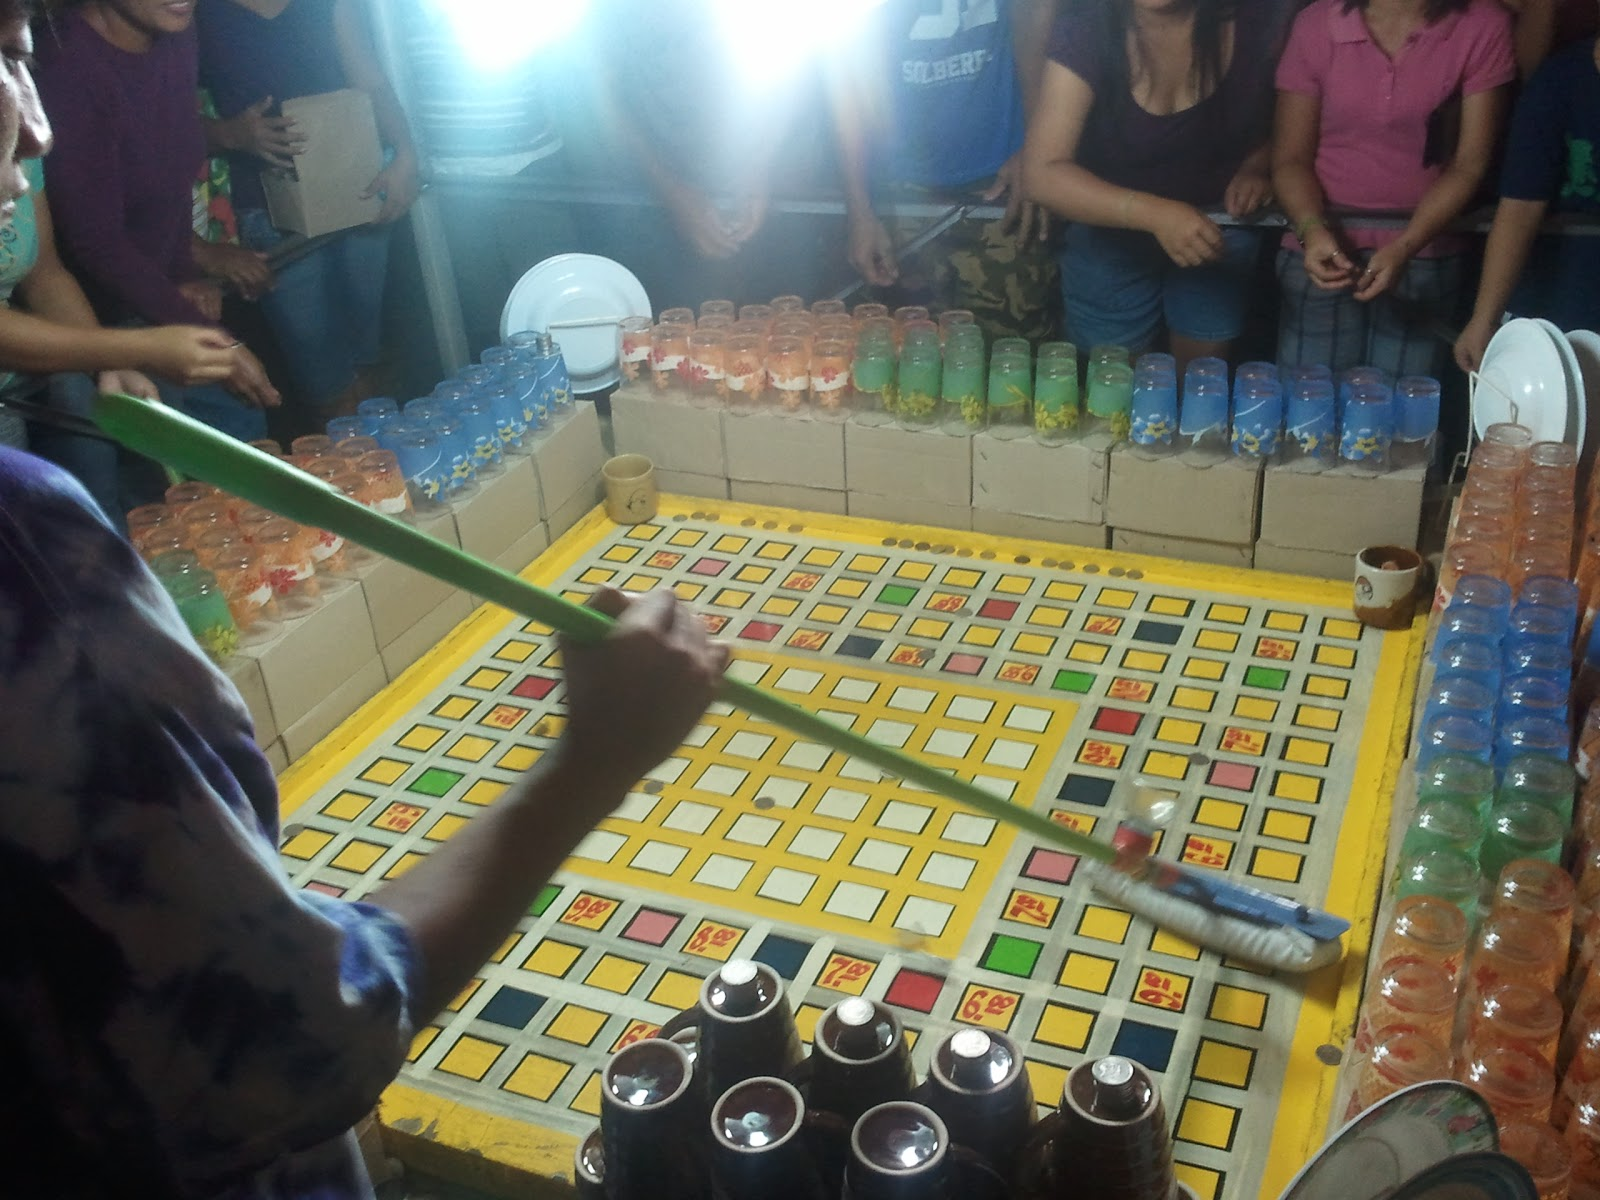 Color game in perya - When I Was A Kid They Have The 25 Cents But Now They Are Betting For 1 Peso Each Throw